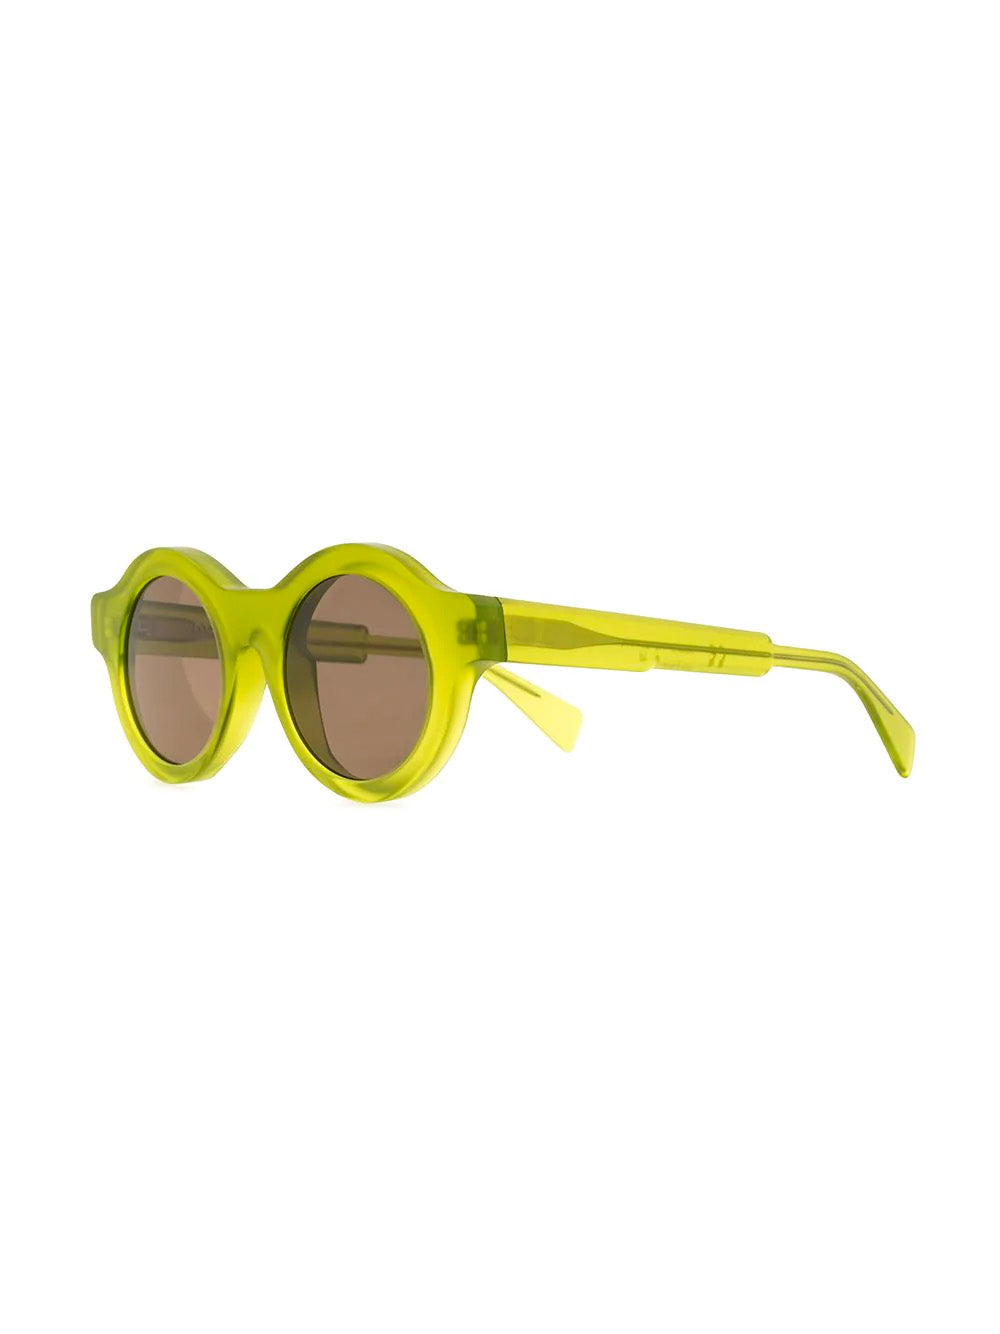 LIME GREEN A1 SUNGLASSES